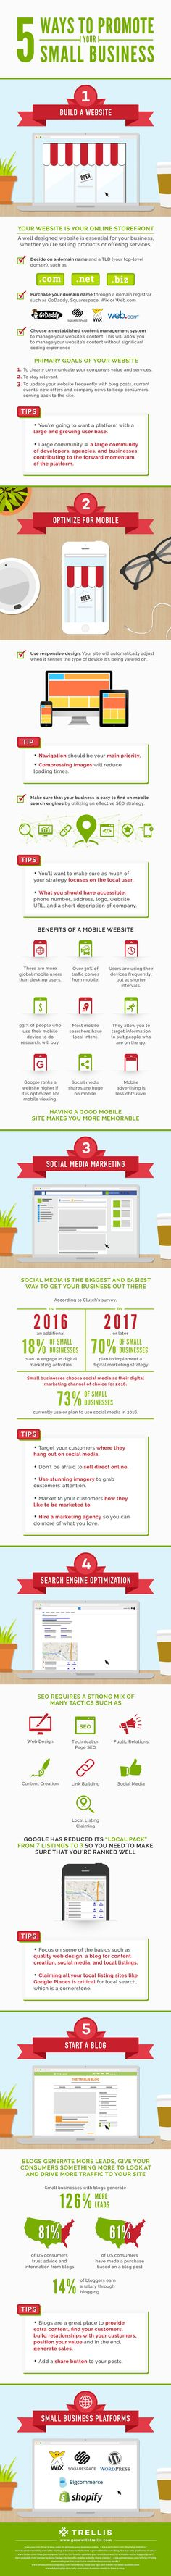 5 Ways to Promote Your Small Business [Infographic] 5 simple yet powerful online marketing tips for promoting your small business - infographic Inbound Marketing, Marketing Digital, Affiliate Marketing, Marketing En Internet, Marketing And Advertising, Online Marketing, Advertising Ideas, Social Business, Small Business Marketing